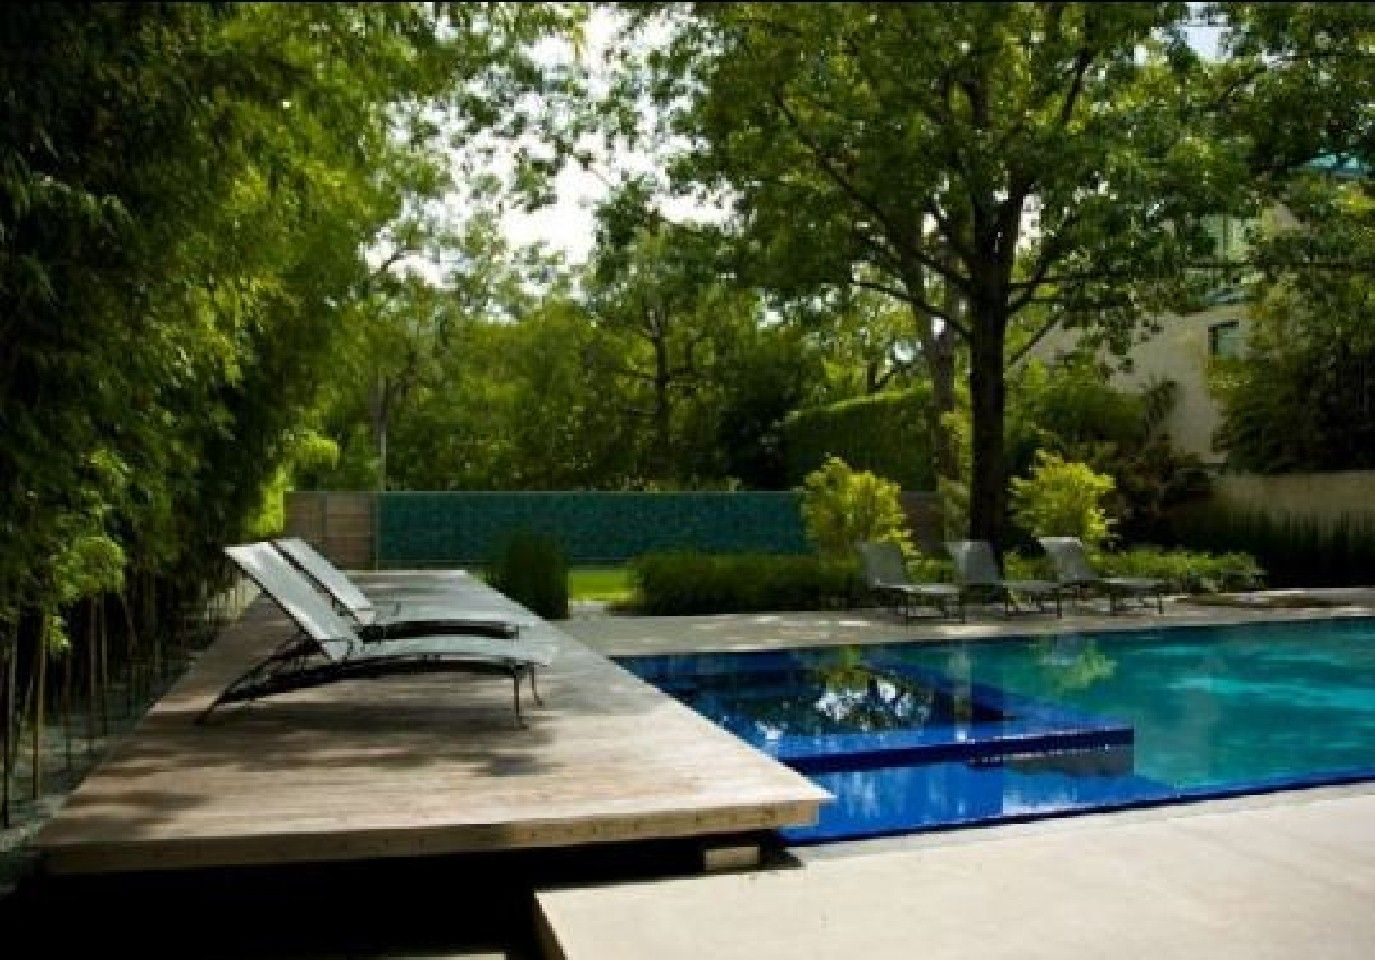 Swimming pool garden  Nature Modern Wooden House Garden And Swimming Pool At Dallas ...